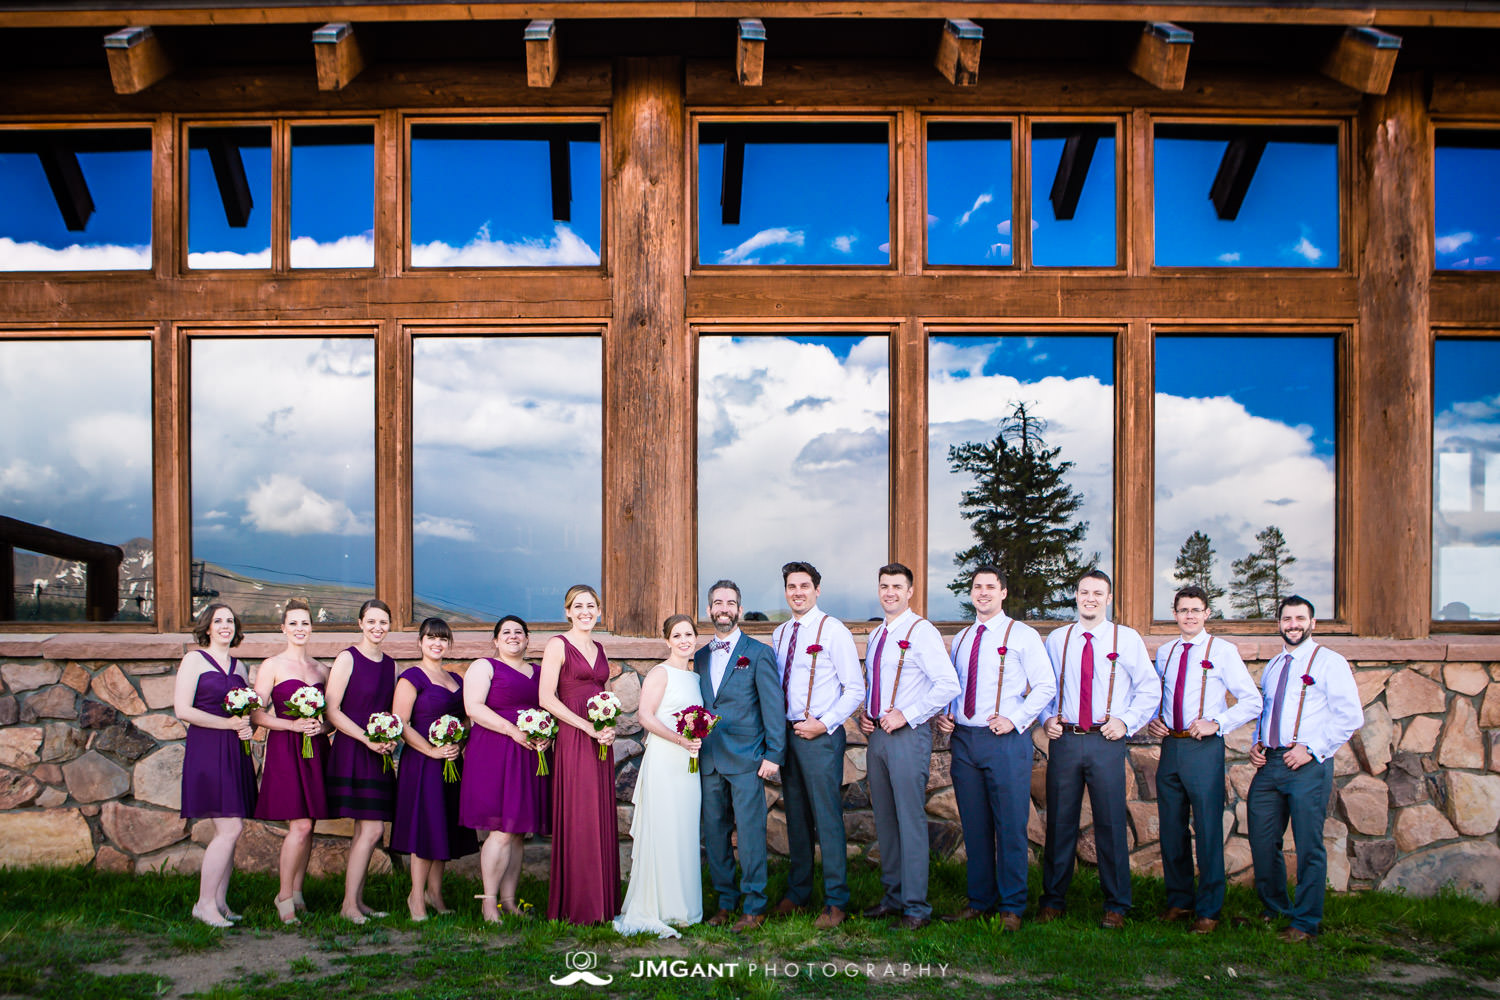 Wedding party at Winter Park wedding photographed by JMGant Photography.